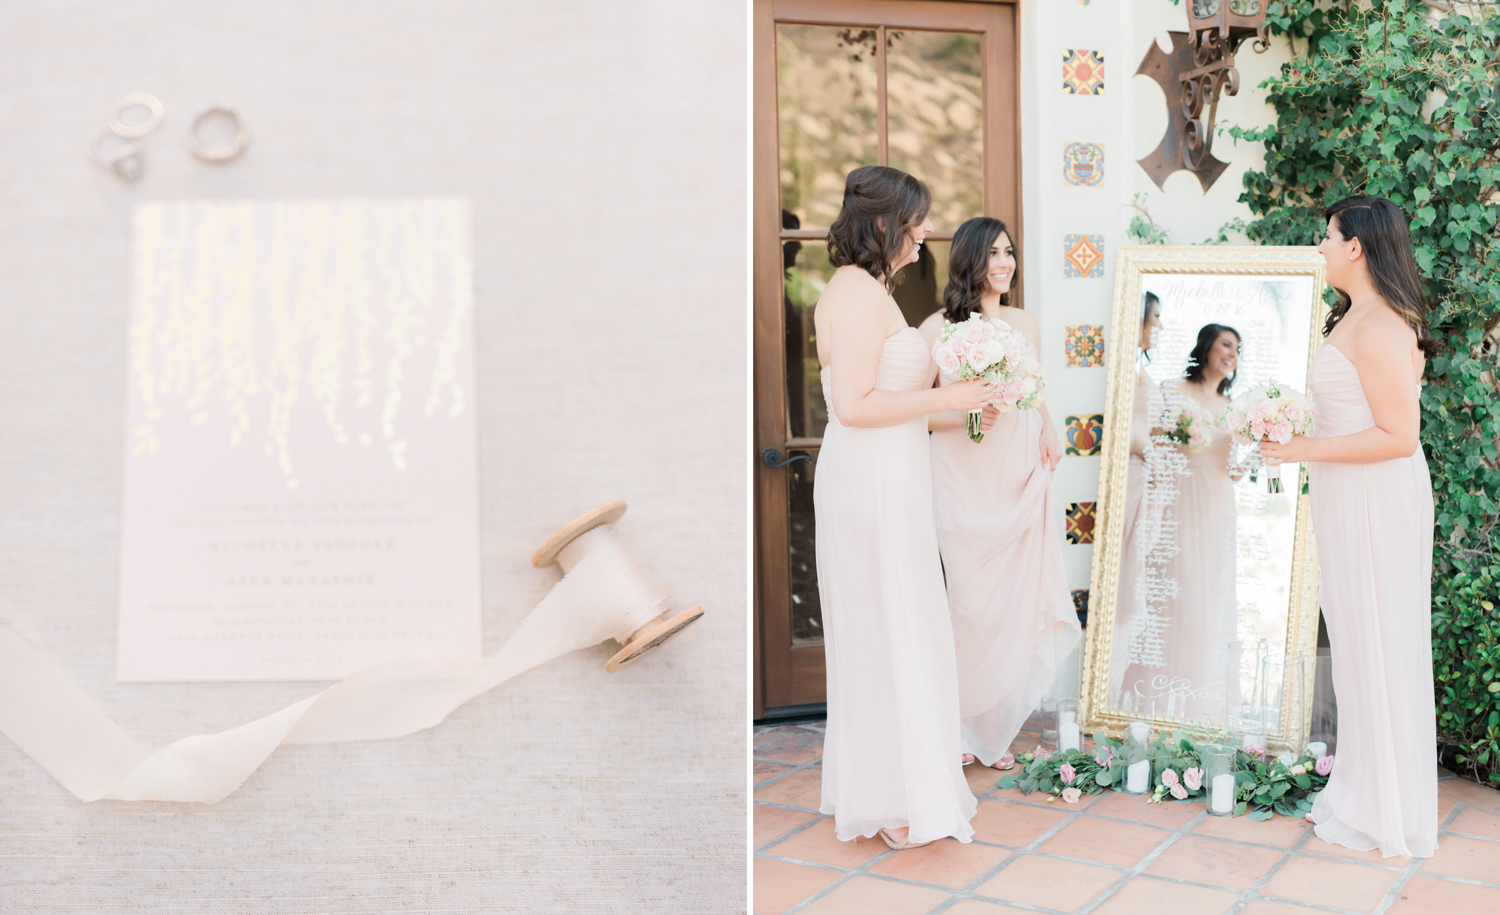 azer&michelle_hummingbird_nest_ranch_wedding_fine_art_photographer_los_angeles-17.jpg